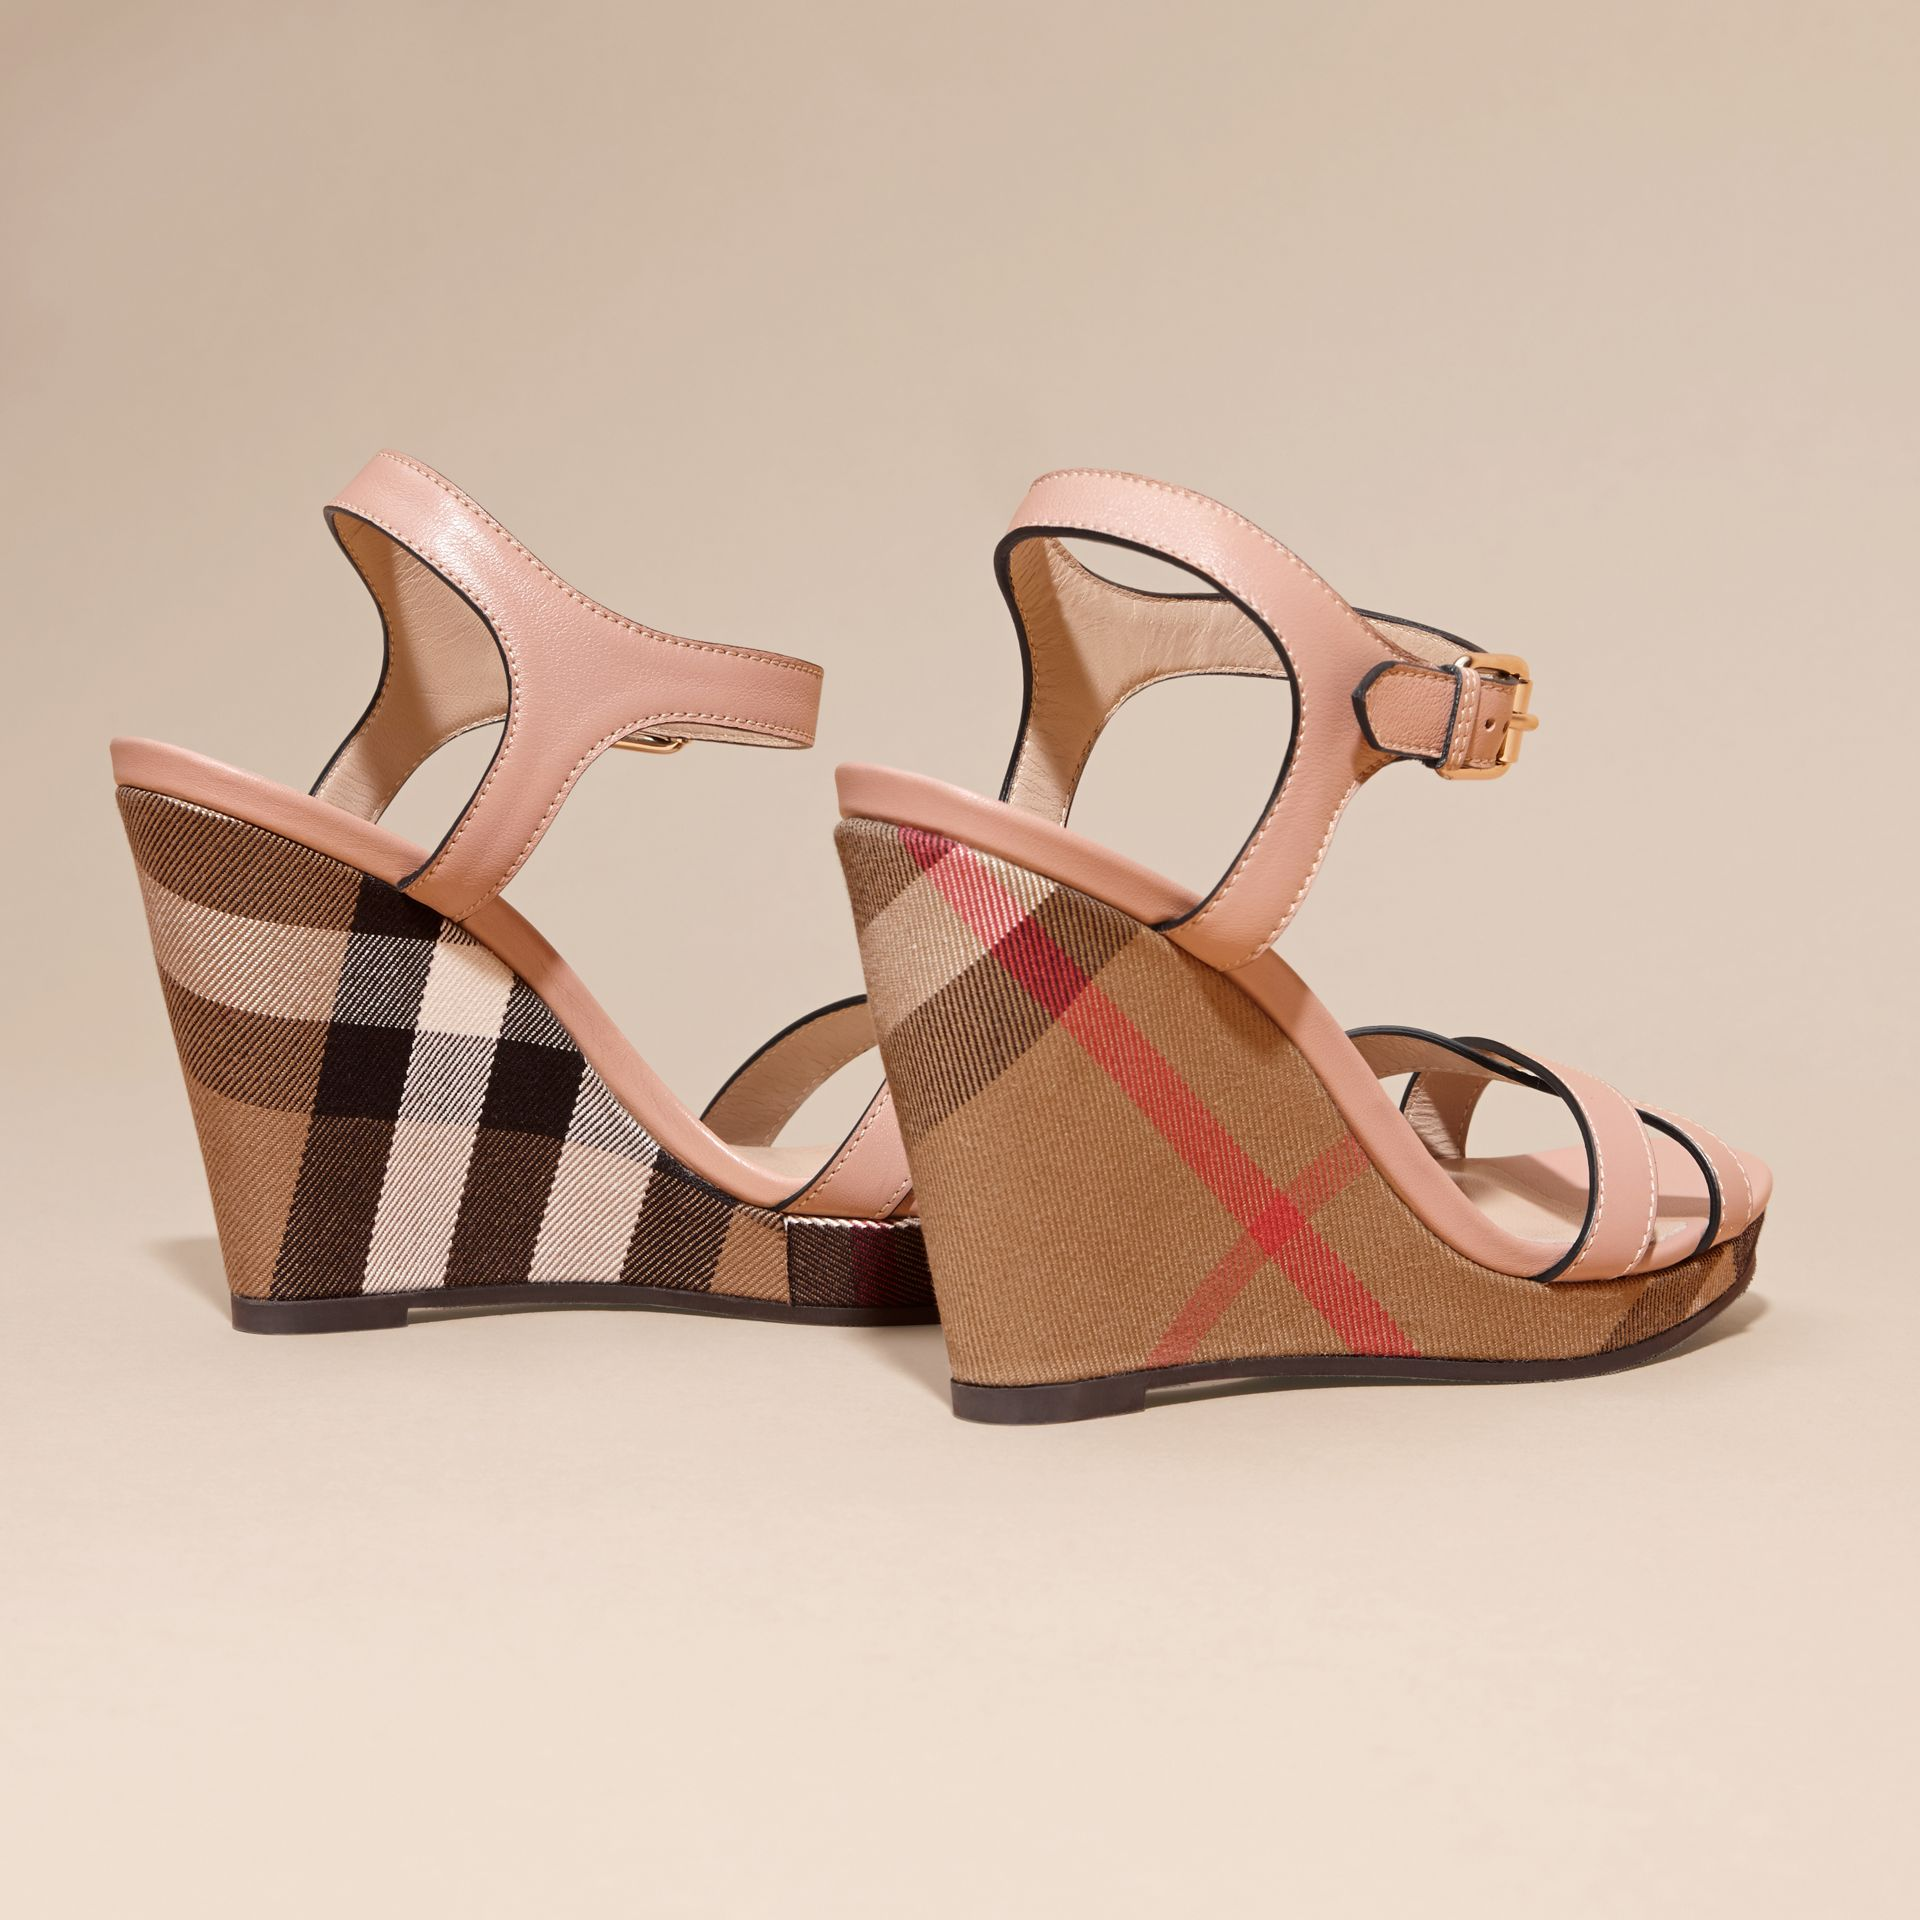 House Check Detail Leather Wedge Sandals in Nude Blush - Women | Burberry United States - gallery image 4